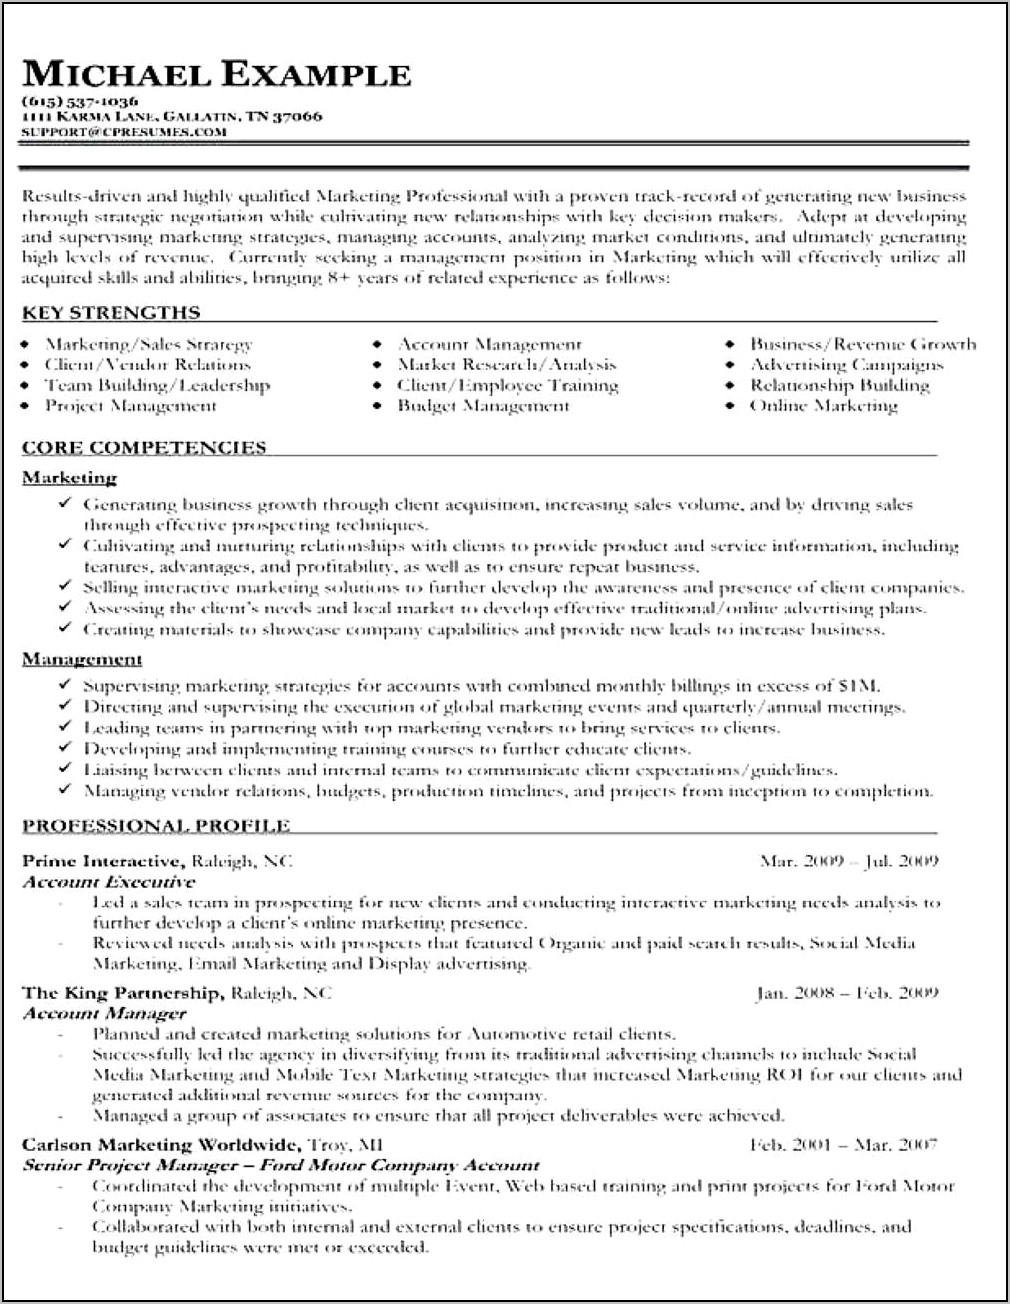 Templates Of Professional Resume